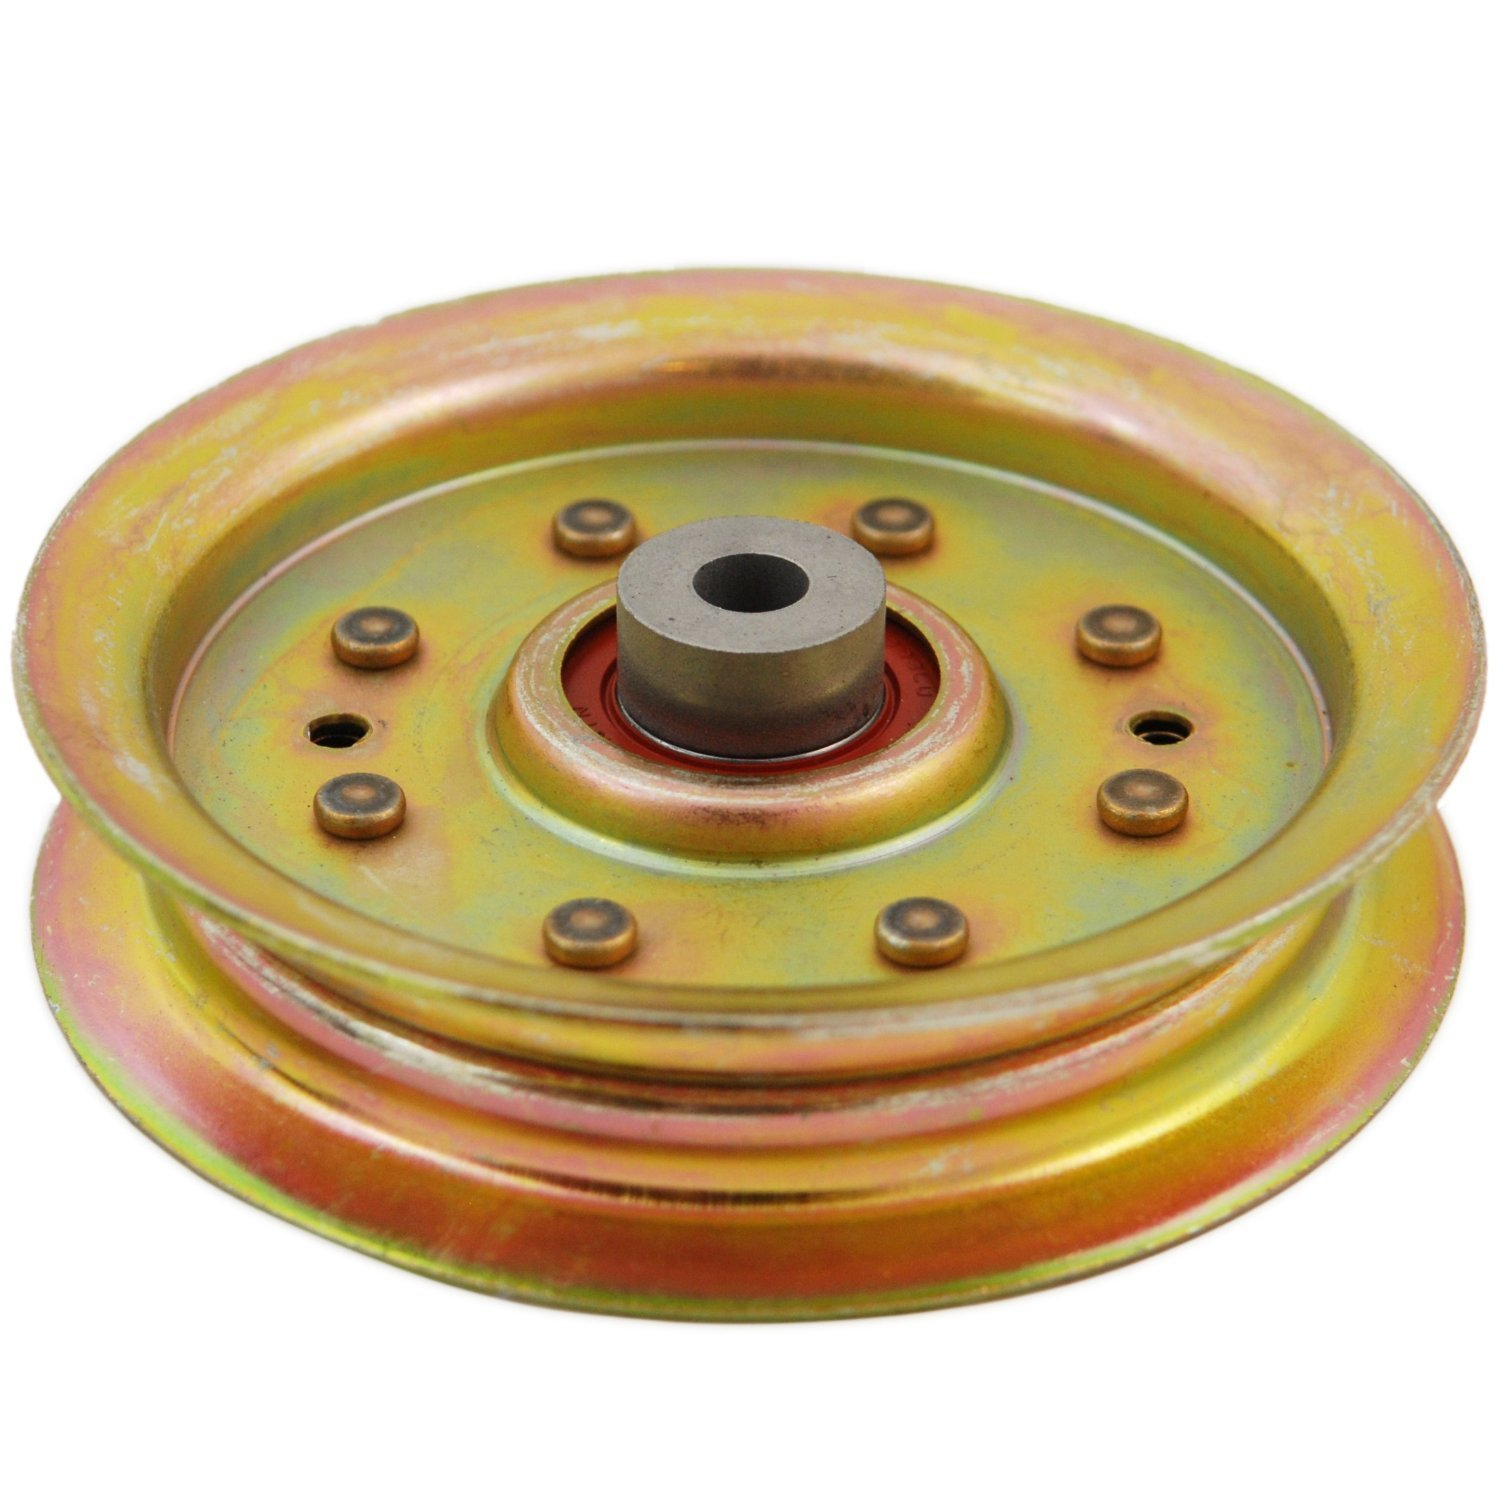 "Heavy-Duty Flat Idler Pulley Replaces Cub Cadet 956-04129 956-04129C 756-04129B 756-04129C MTD 753-08171 756-04129B 756-04129C 956-04129 956-04129C Fits 38"" 42"" 46"" 54"" Decks"